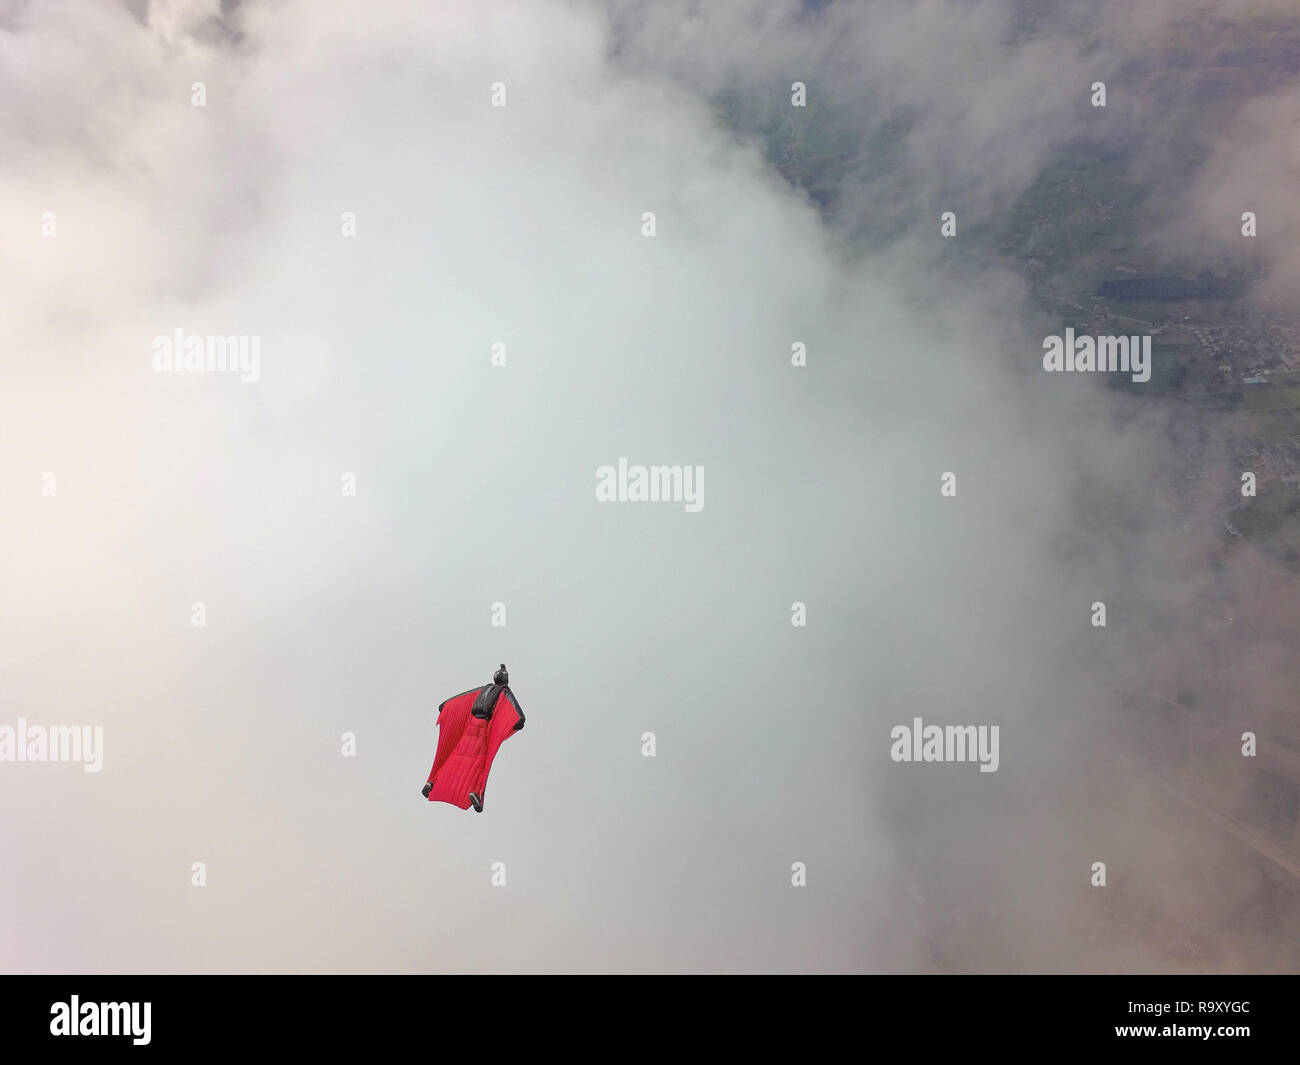 This wingsuit pilot is racing around a clound with high speed. It is fan to play within the birdman suit a soar for a long time in the sky. - Stock Image